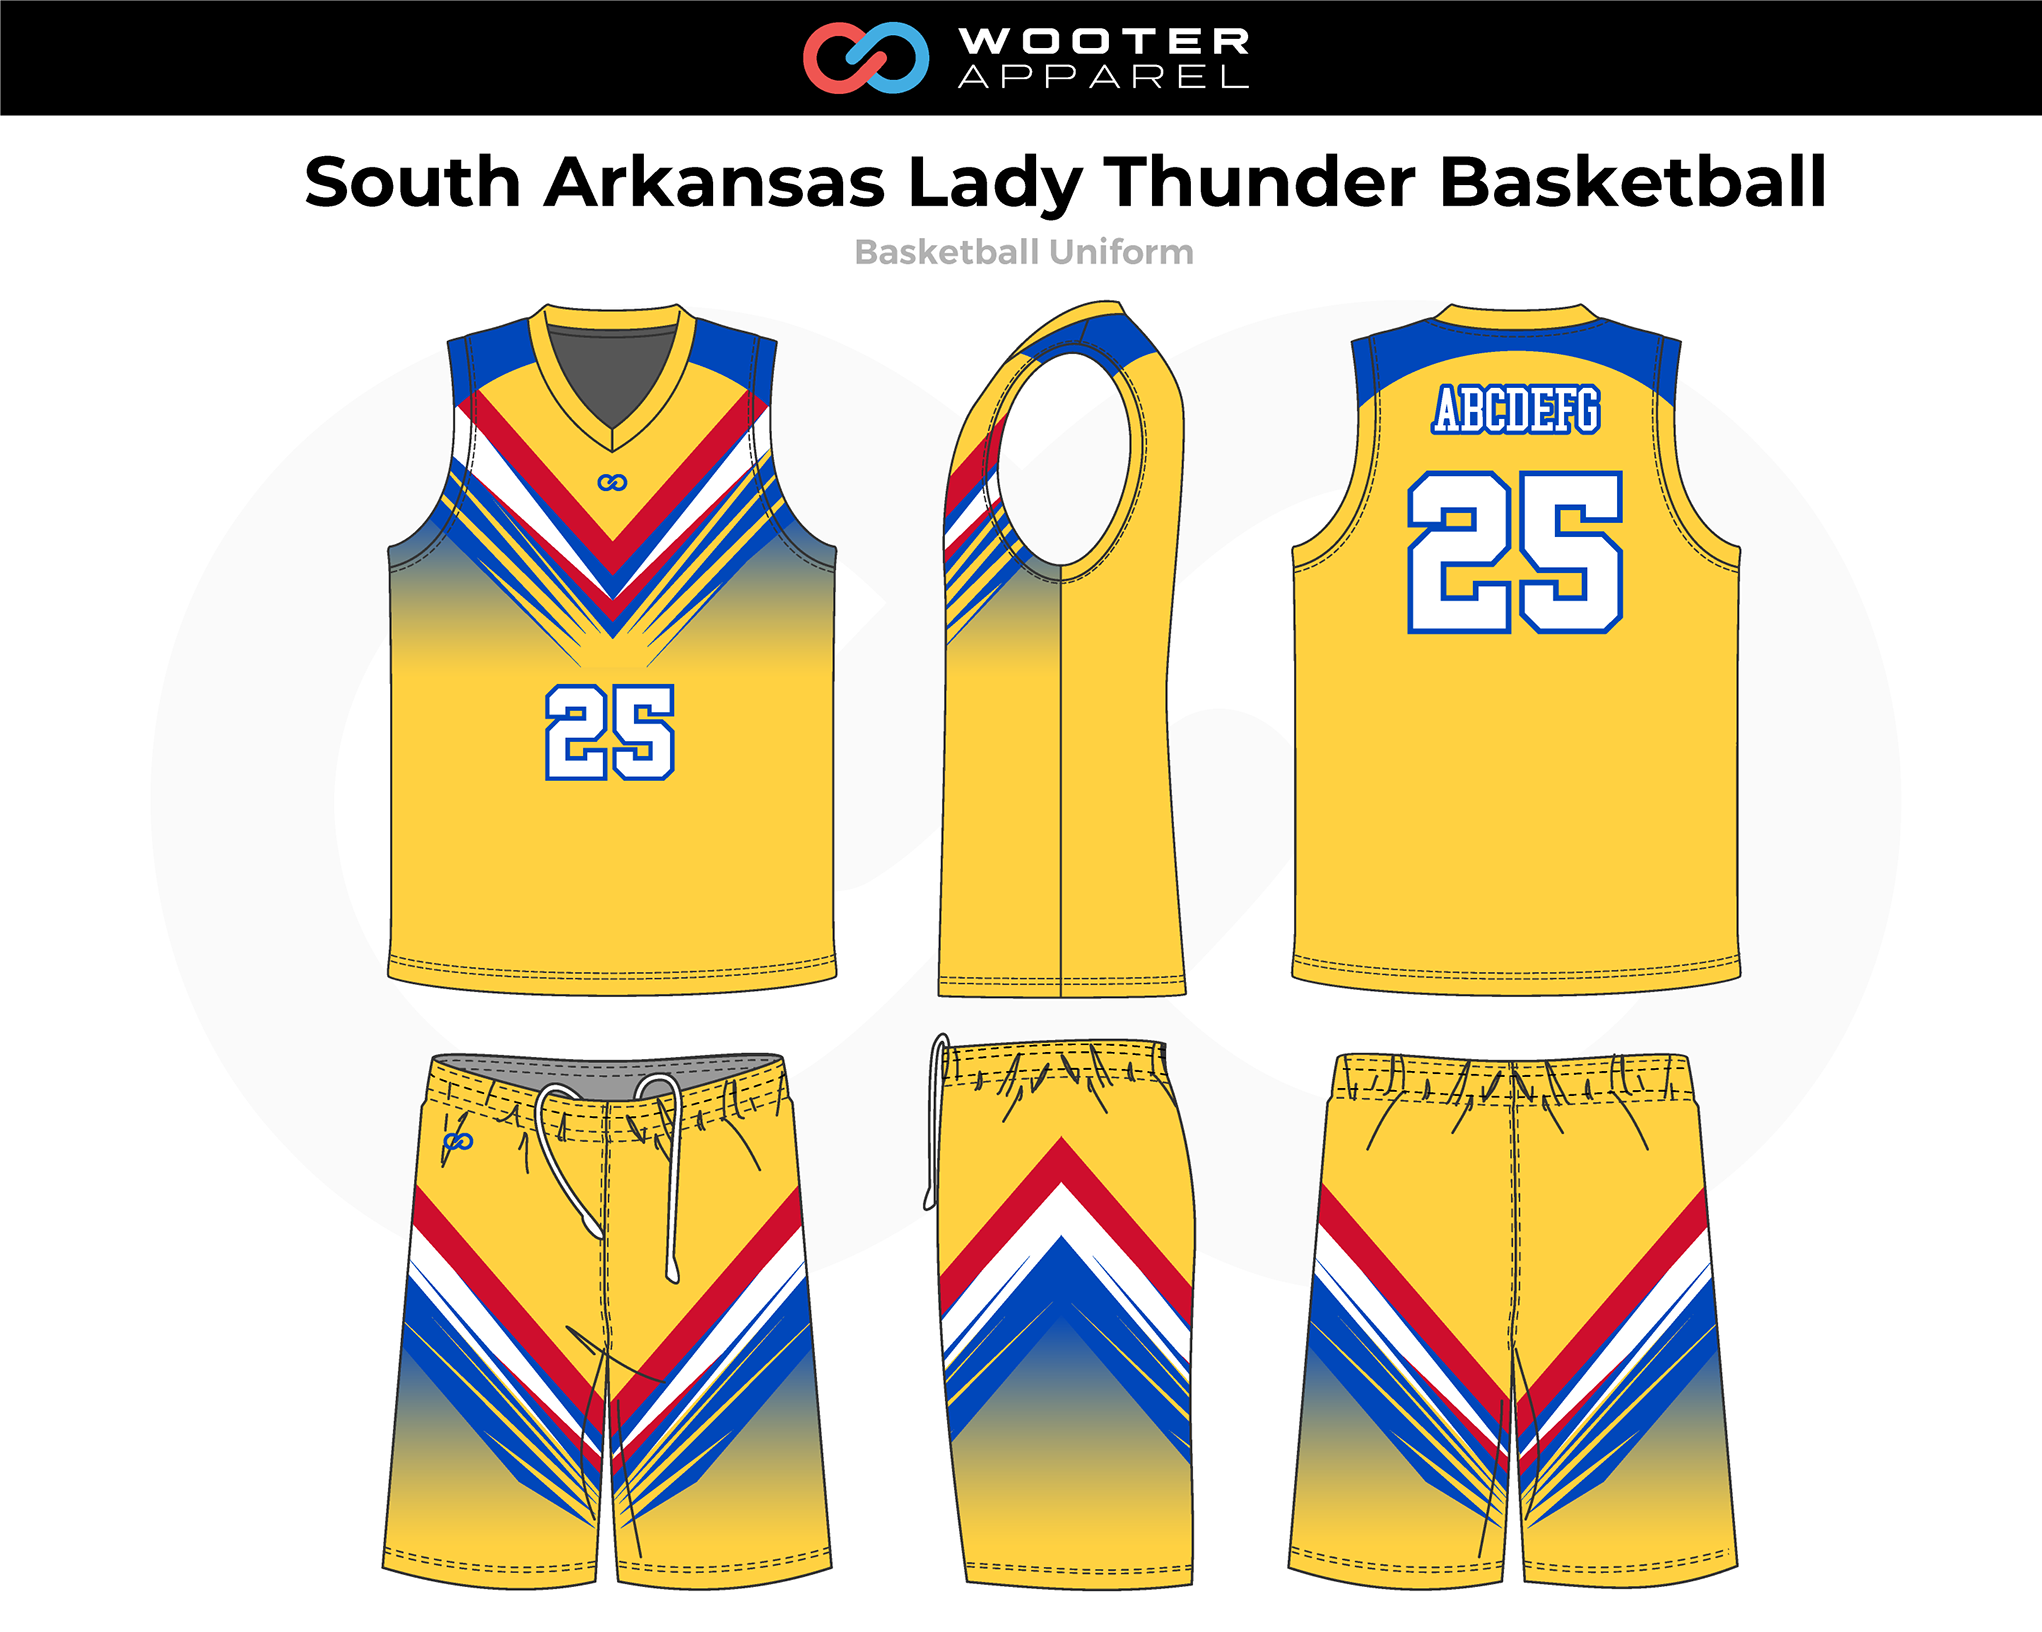 SOUTH ARKANSAS LADY THUNDER Yellow Blue White Red Basketball Uniform, Jersey and Shorts